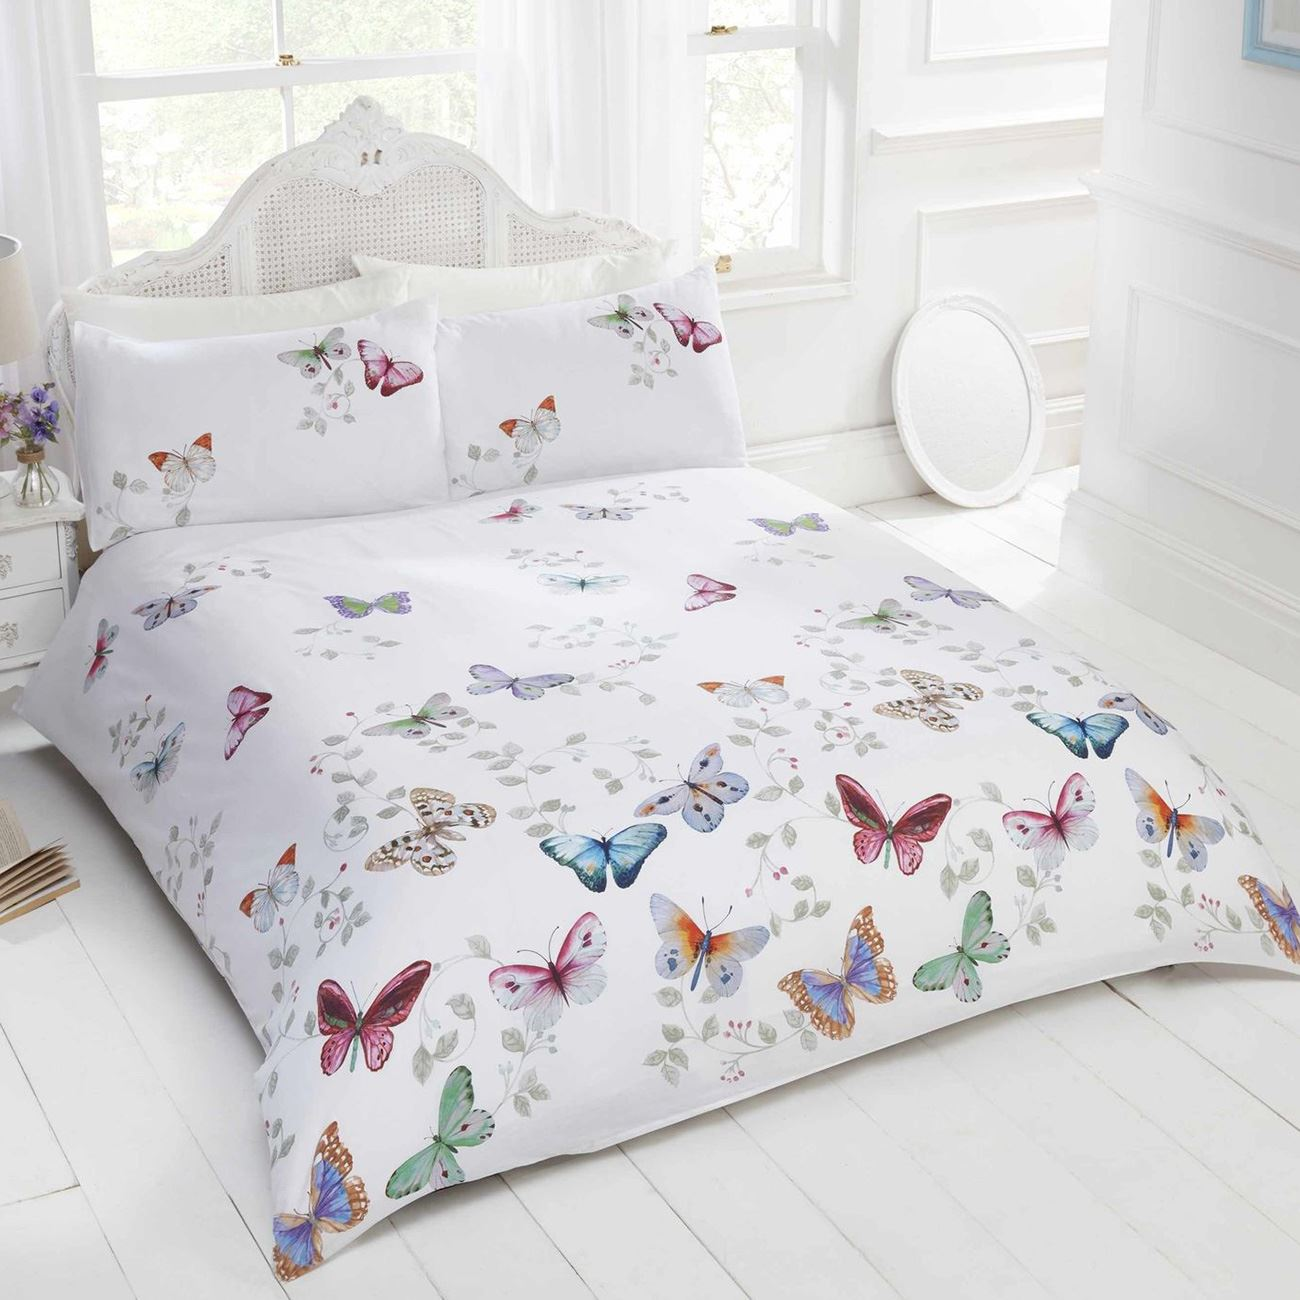 double duvet bedding choosing decor inspirations cover flower home inside set hq feather textile for ideas butterfly